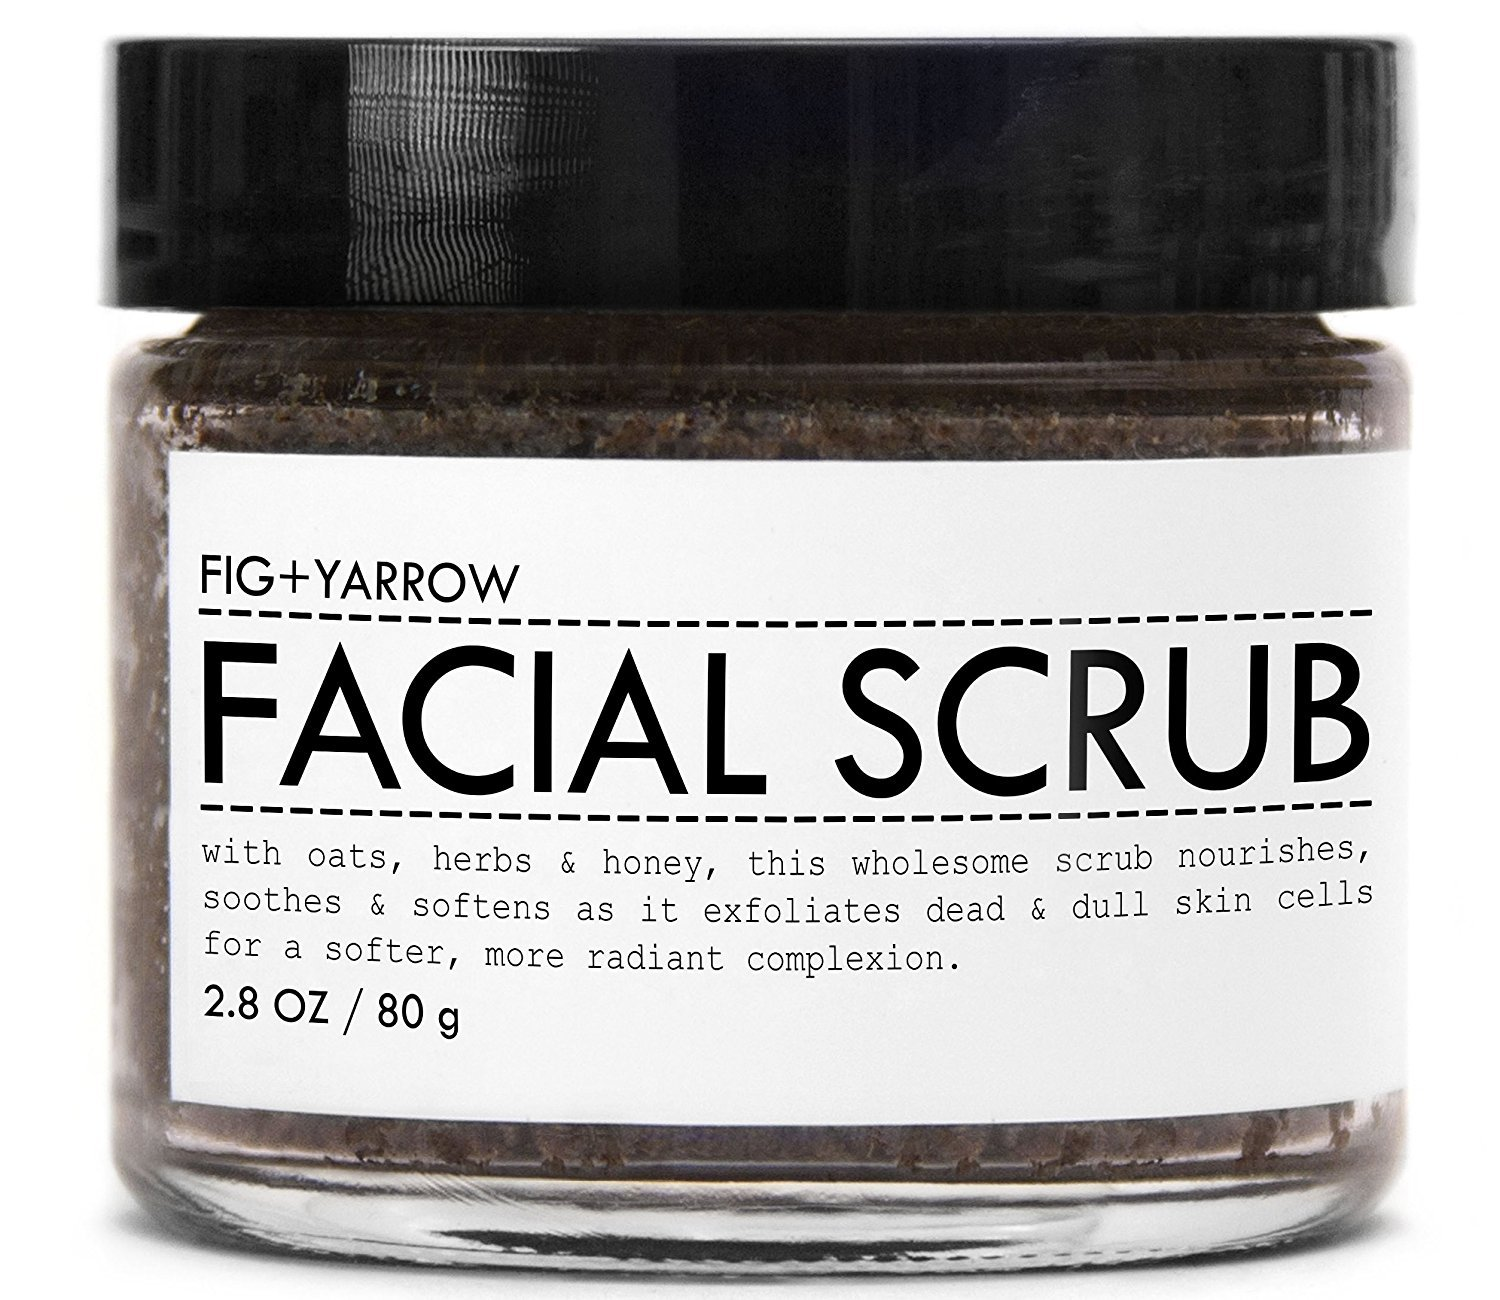 FIG+YARROW Organic Facial Scrub - 2.8 oz